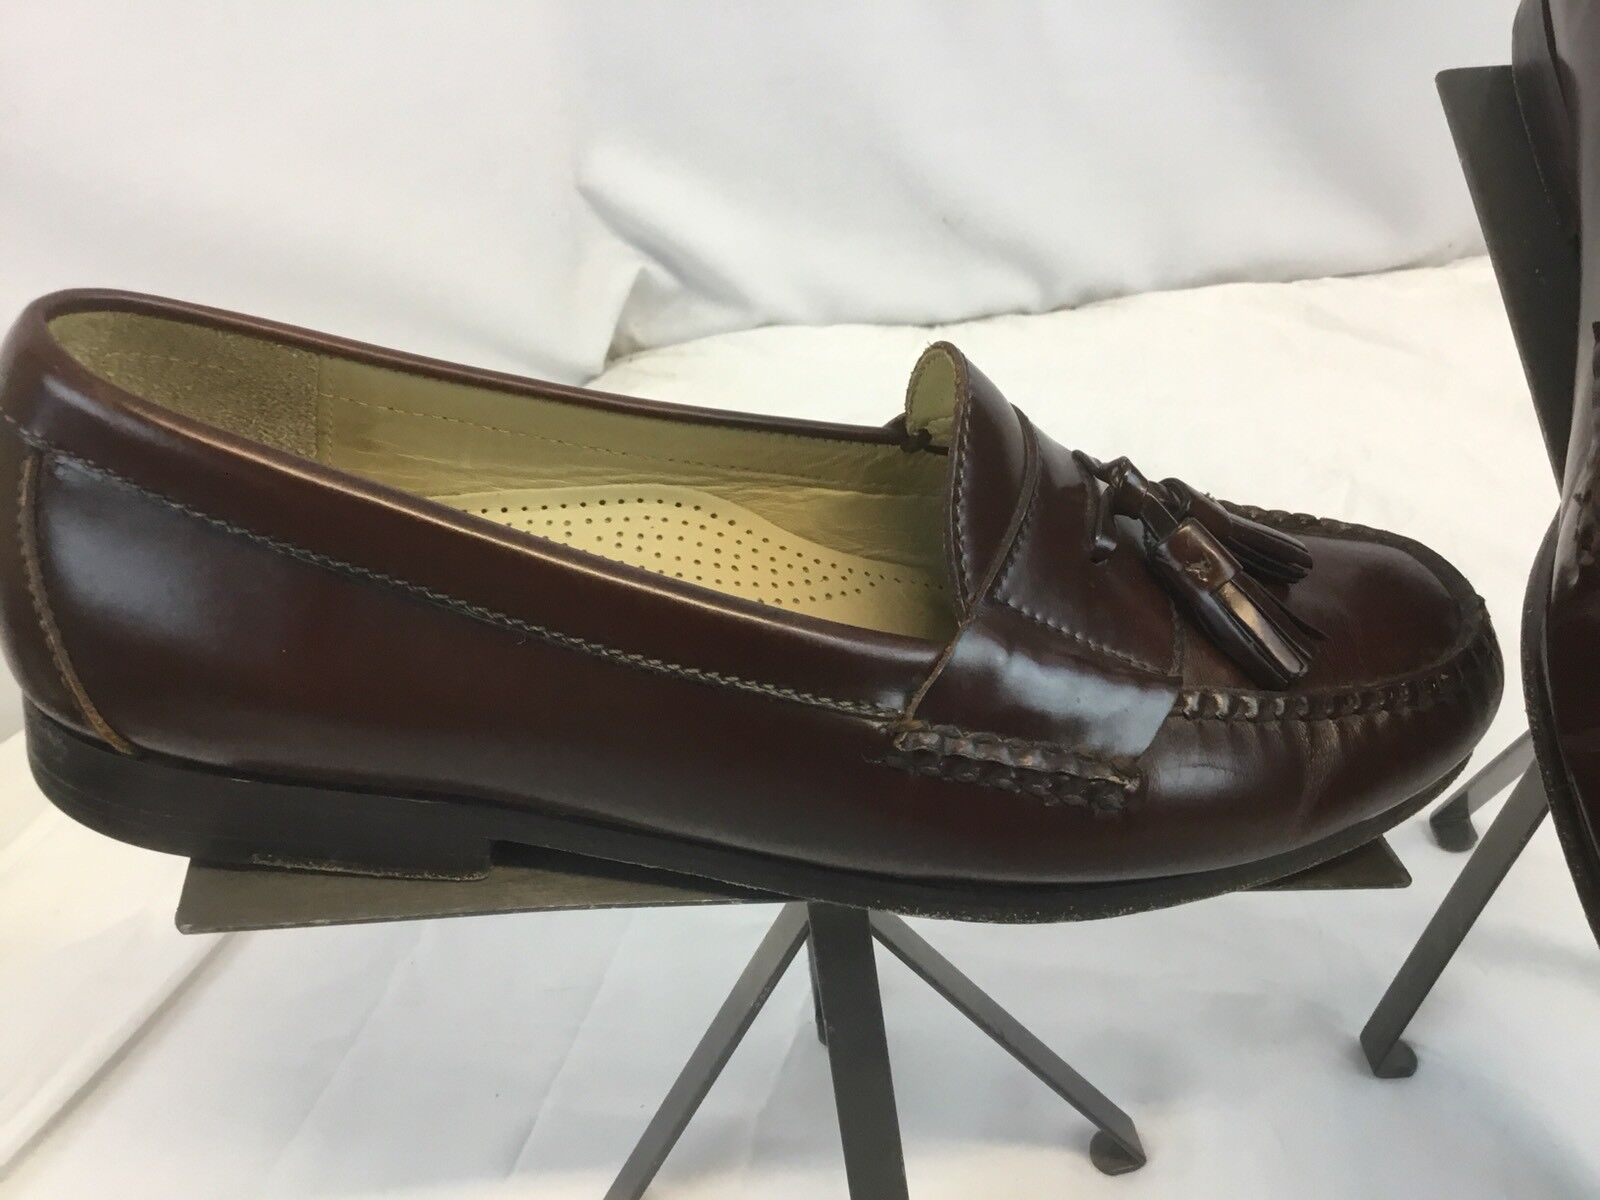 Cole Haan Loafers Shoes Sz 9 E Brown Leather Tassels Worn Twice YGI G8 Scarpe classiche da uomo